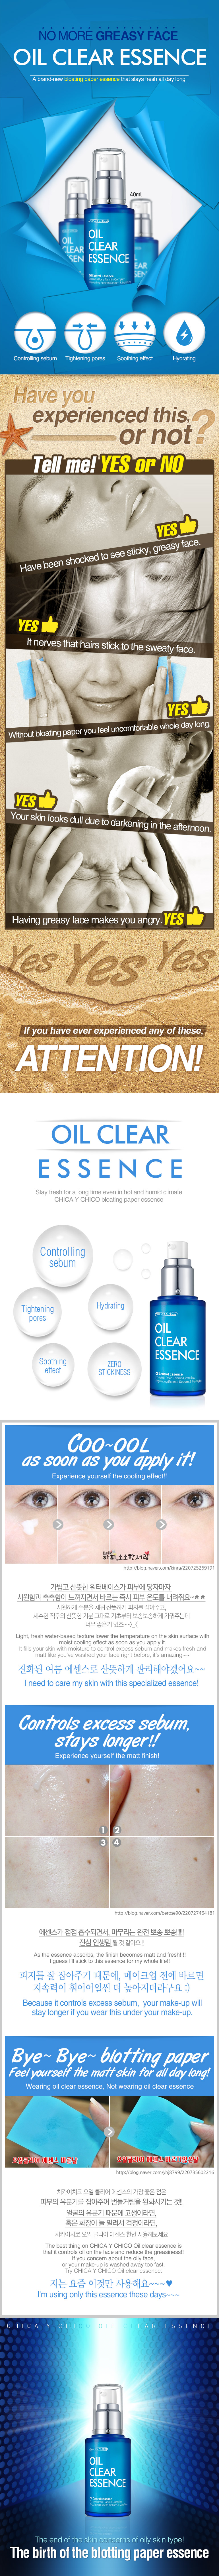 Oil Clear Essence